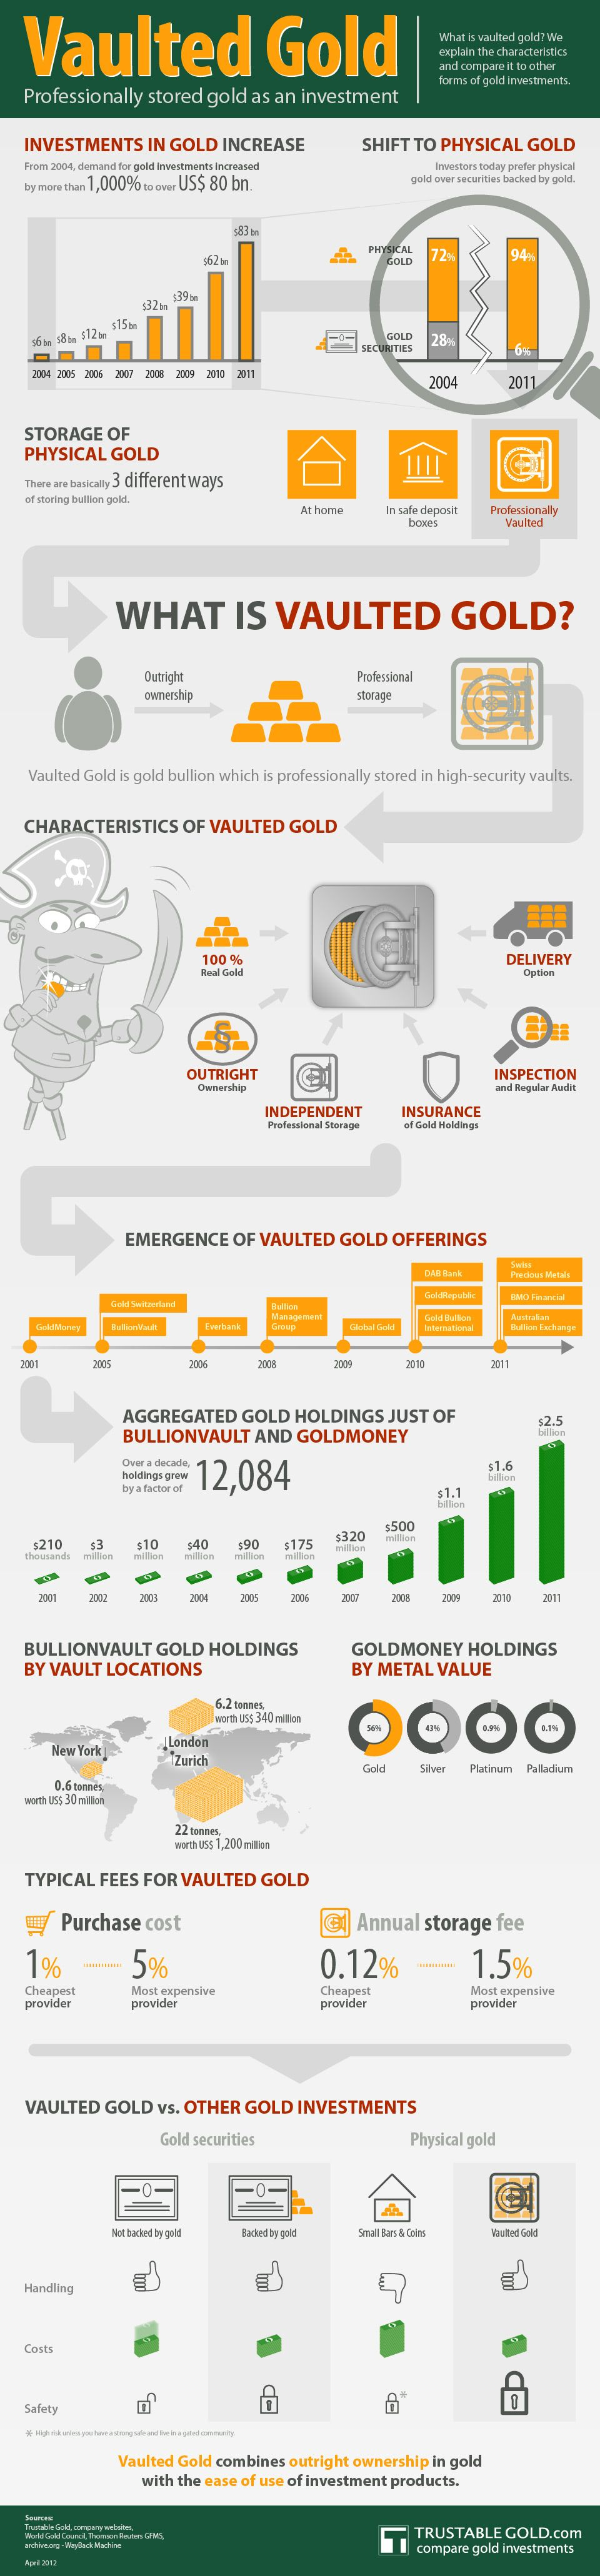 Everything You Need To Know About Vaulted Gold